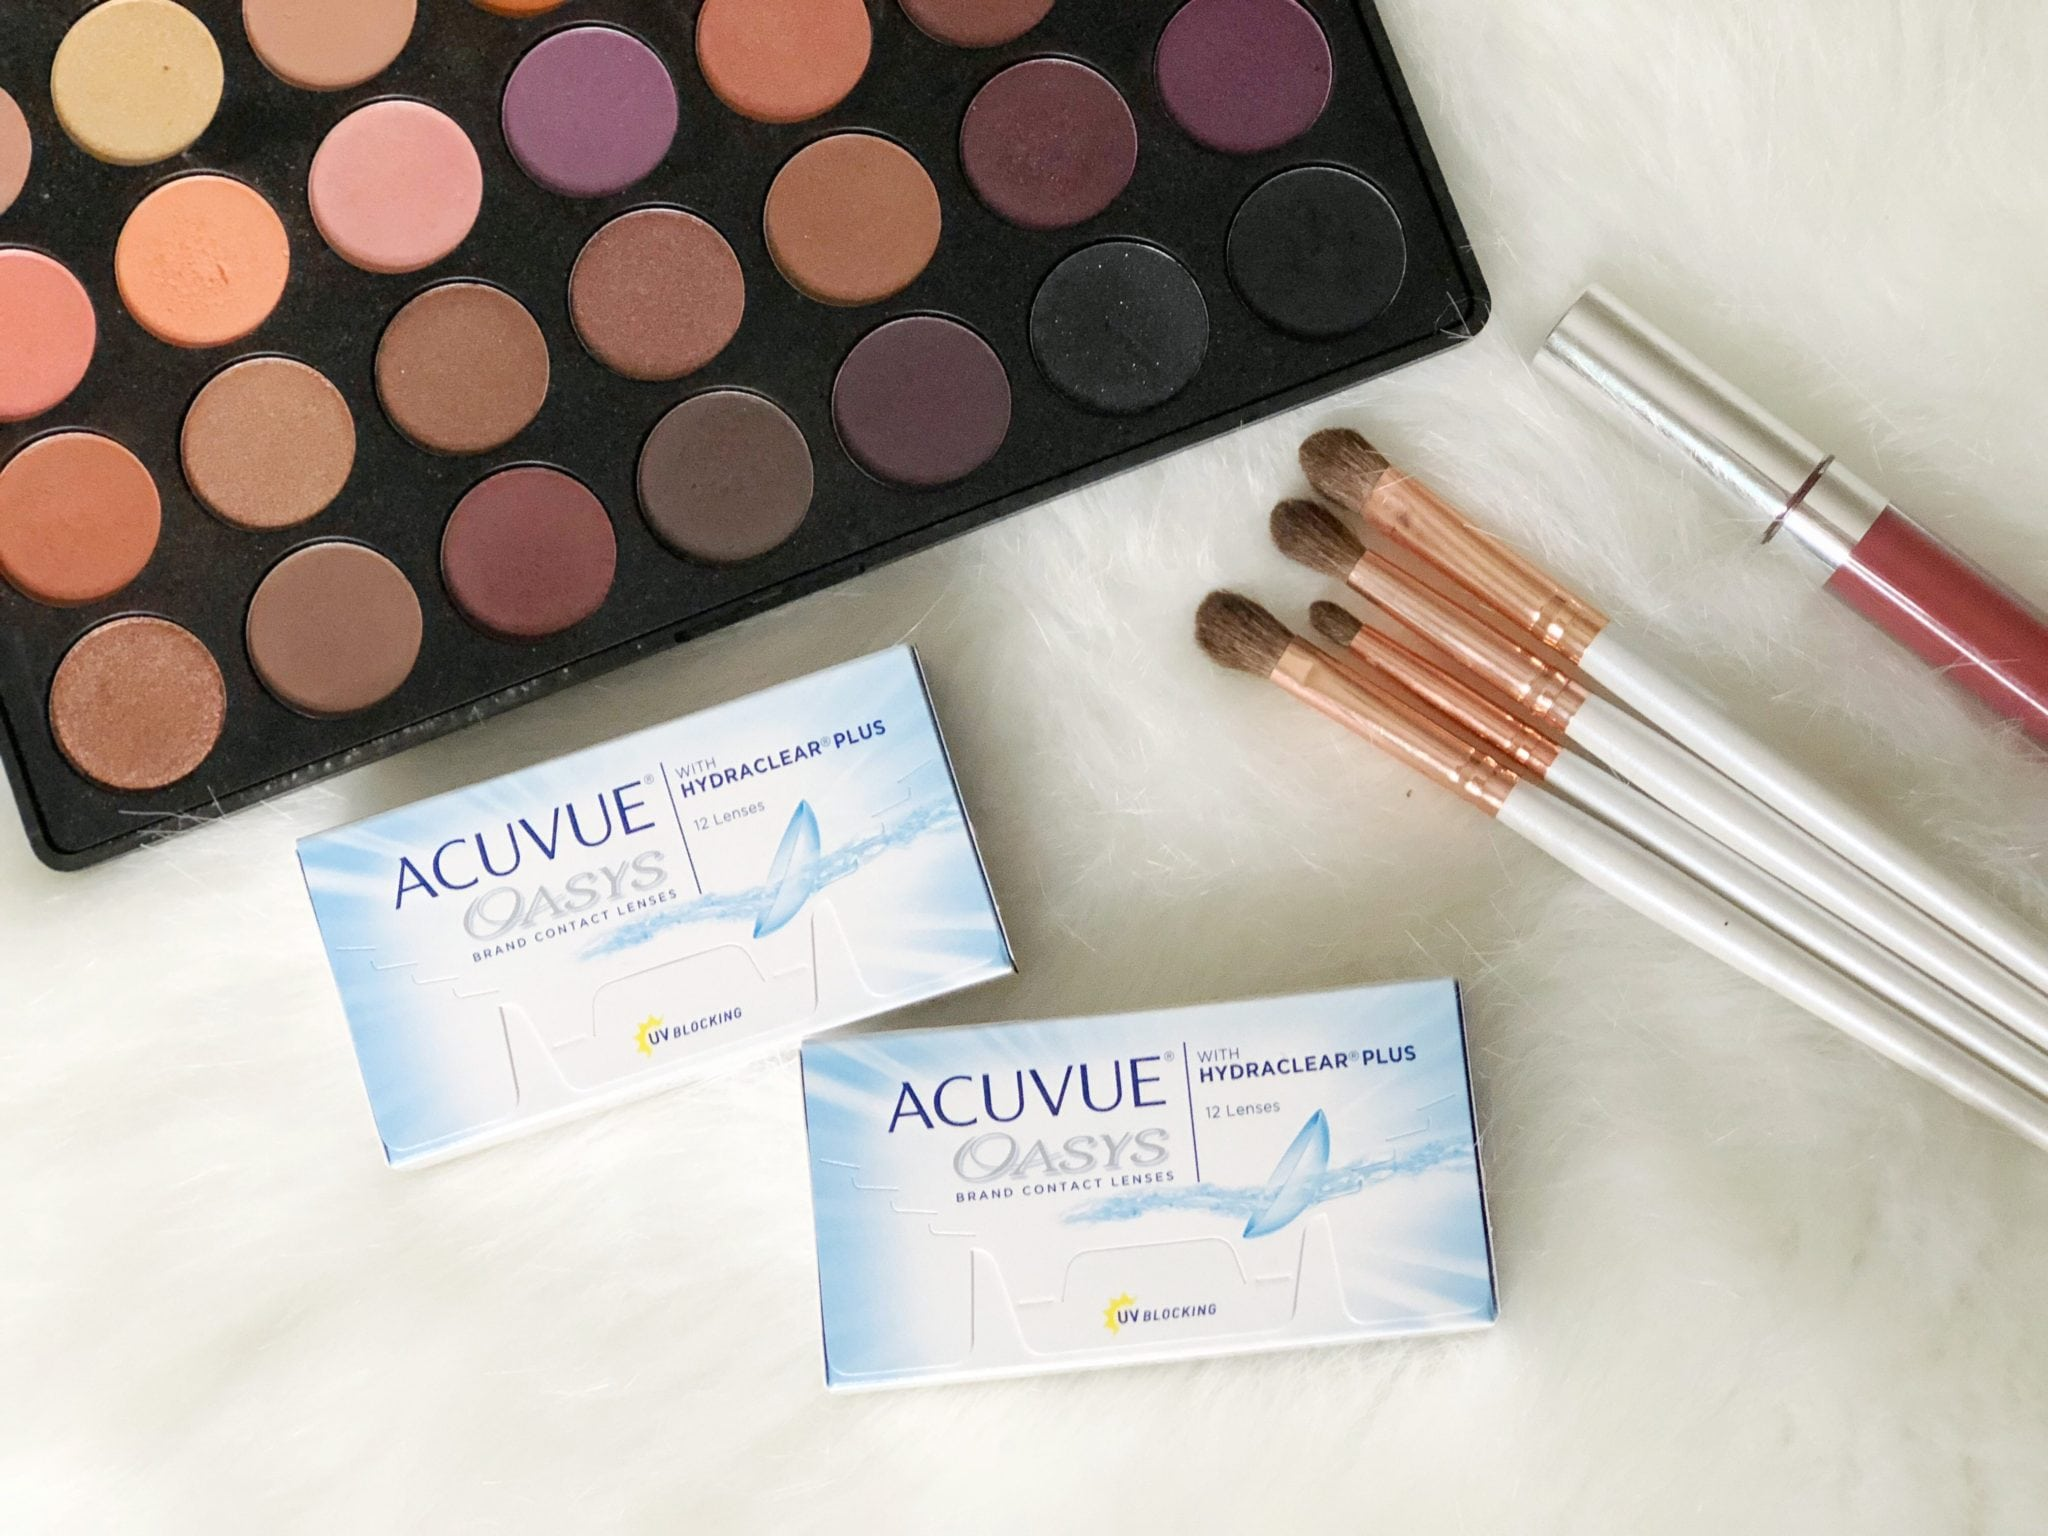 Fall Makeup Look with ACUVUE® Brand Contact Lenses